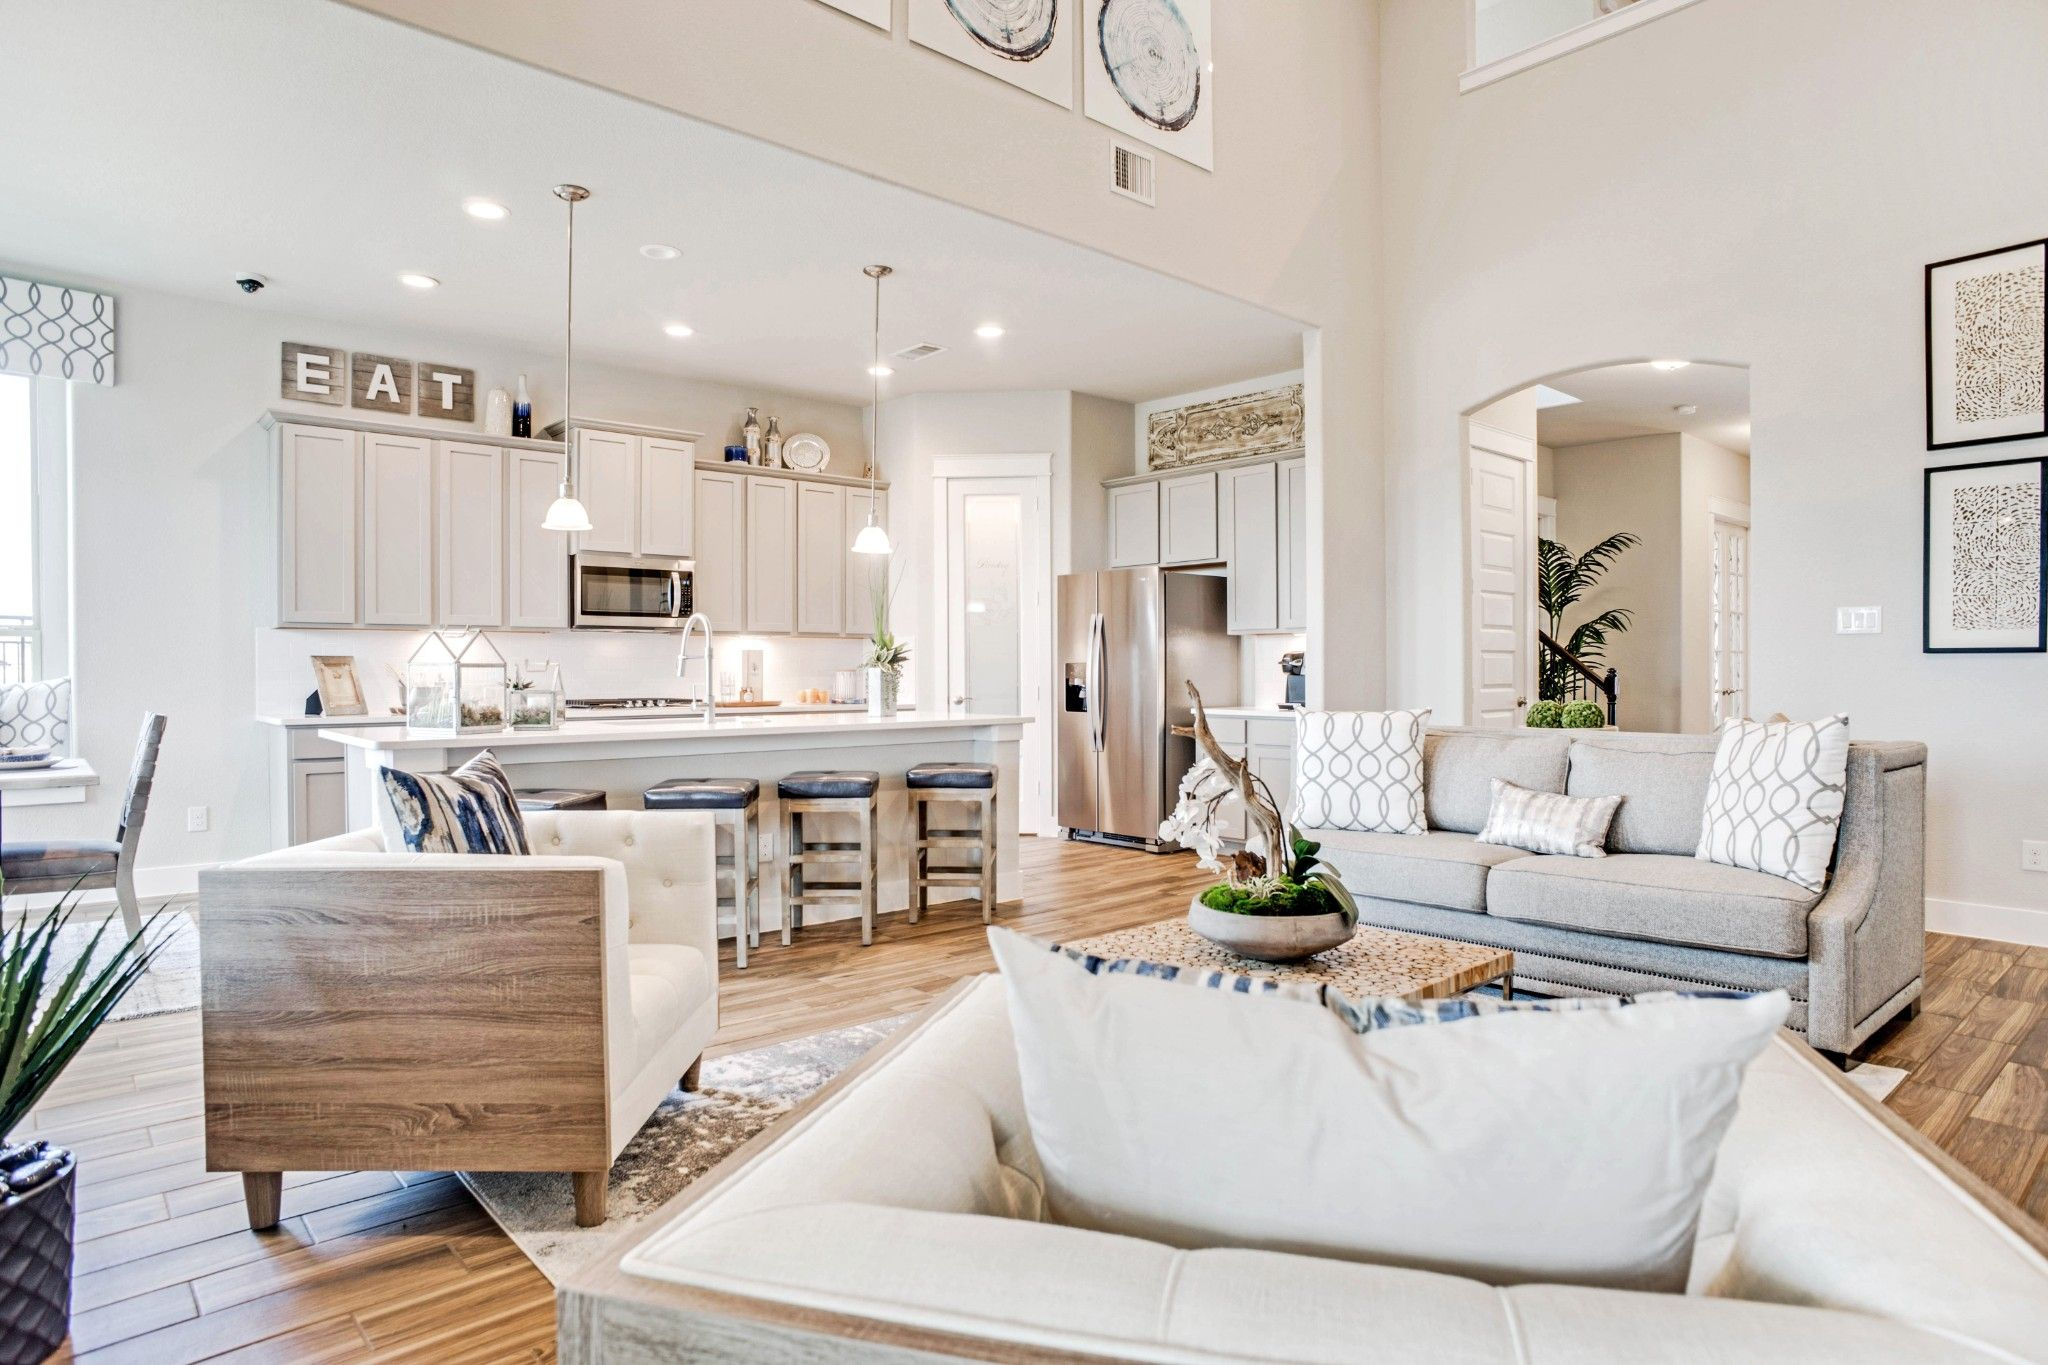 'Twin Hills' by HistoryMaker Homes in Fort Worth